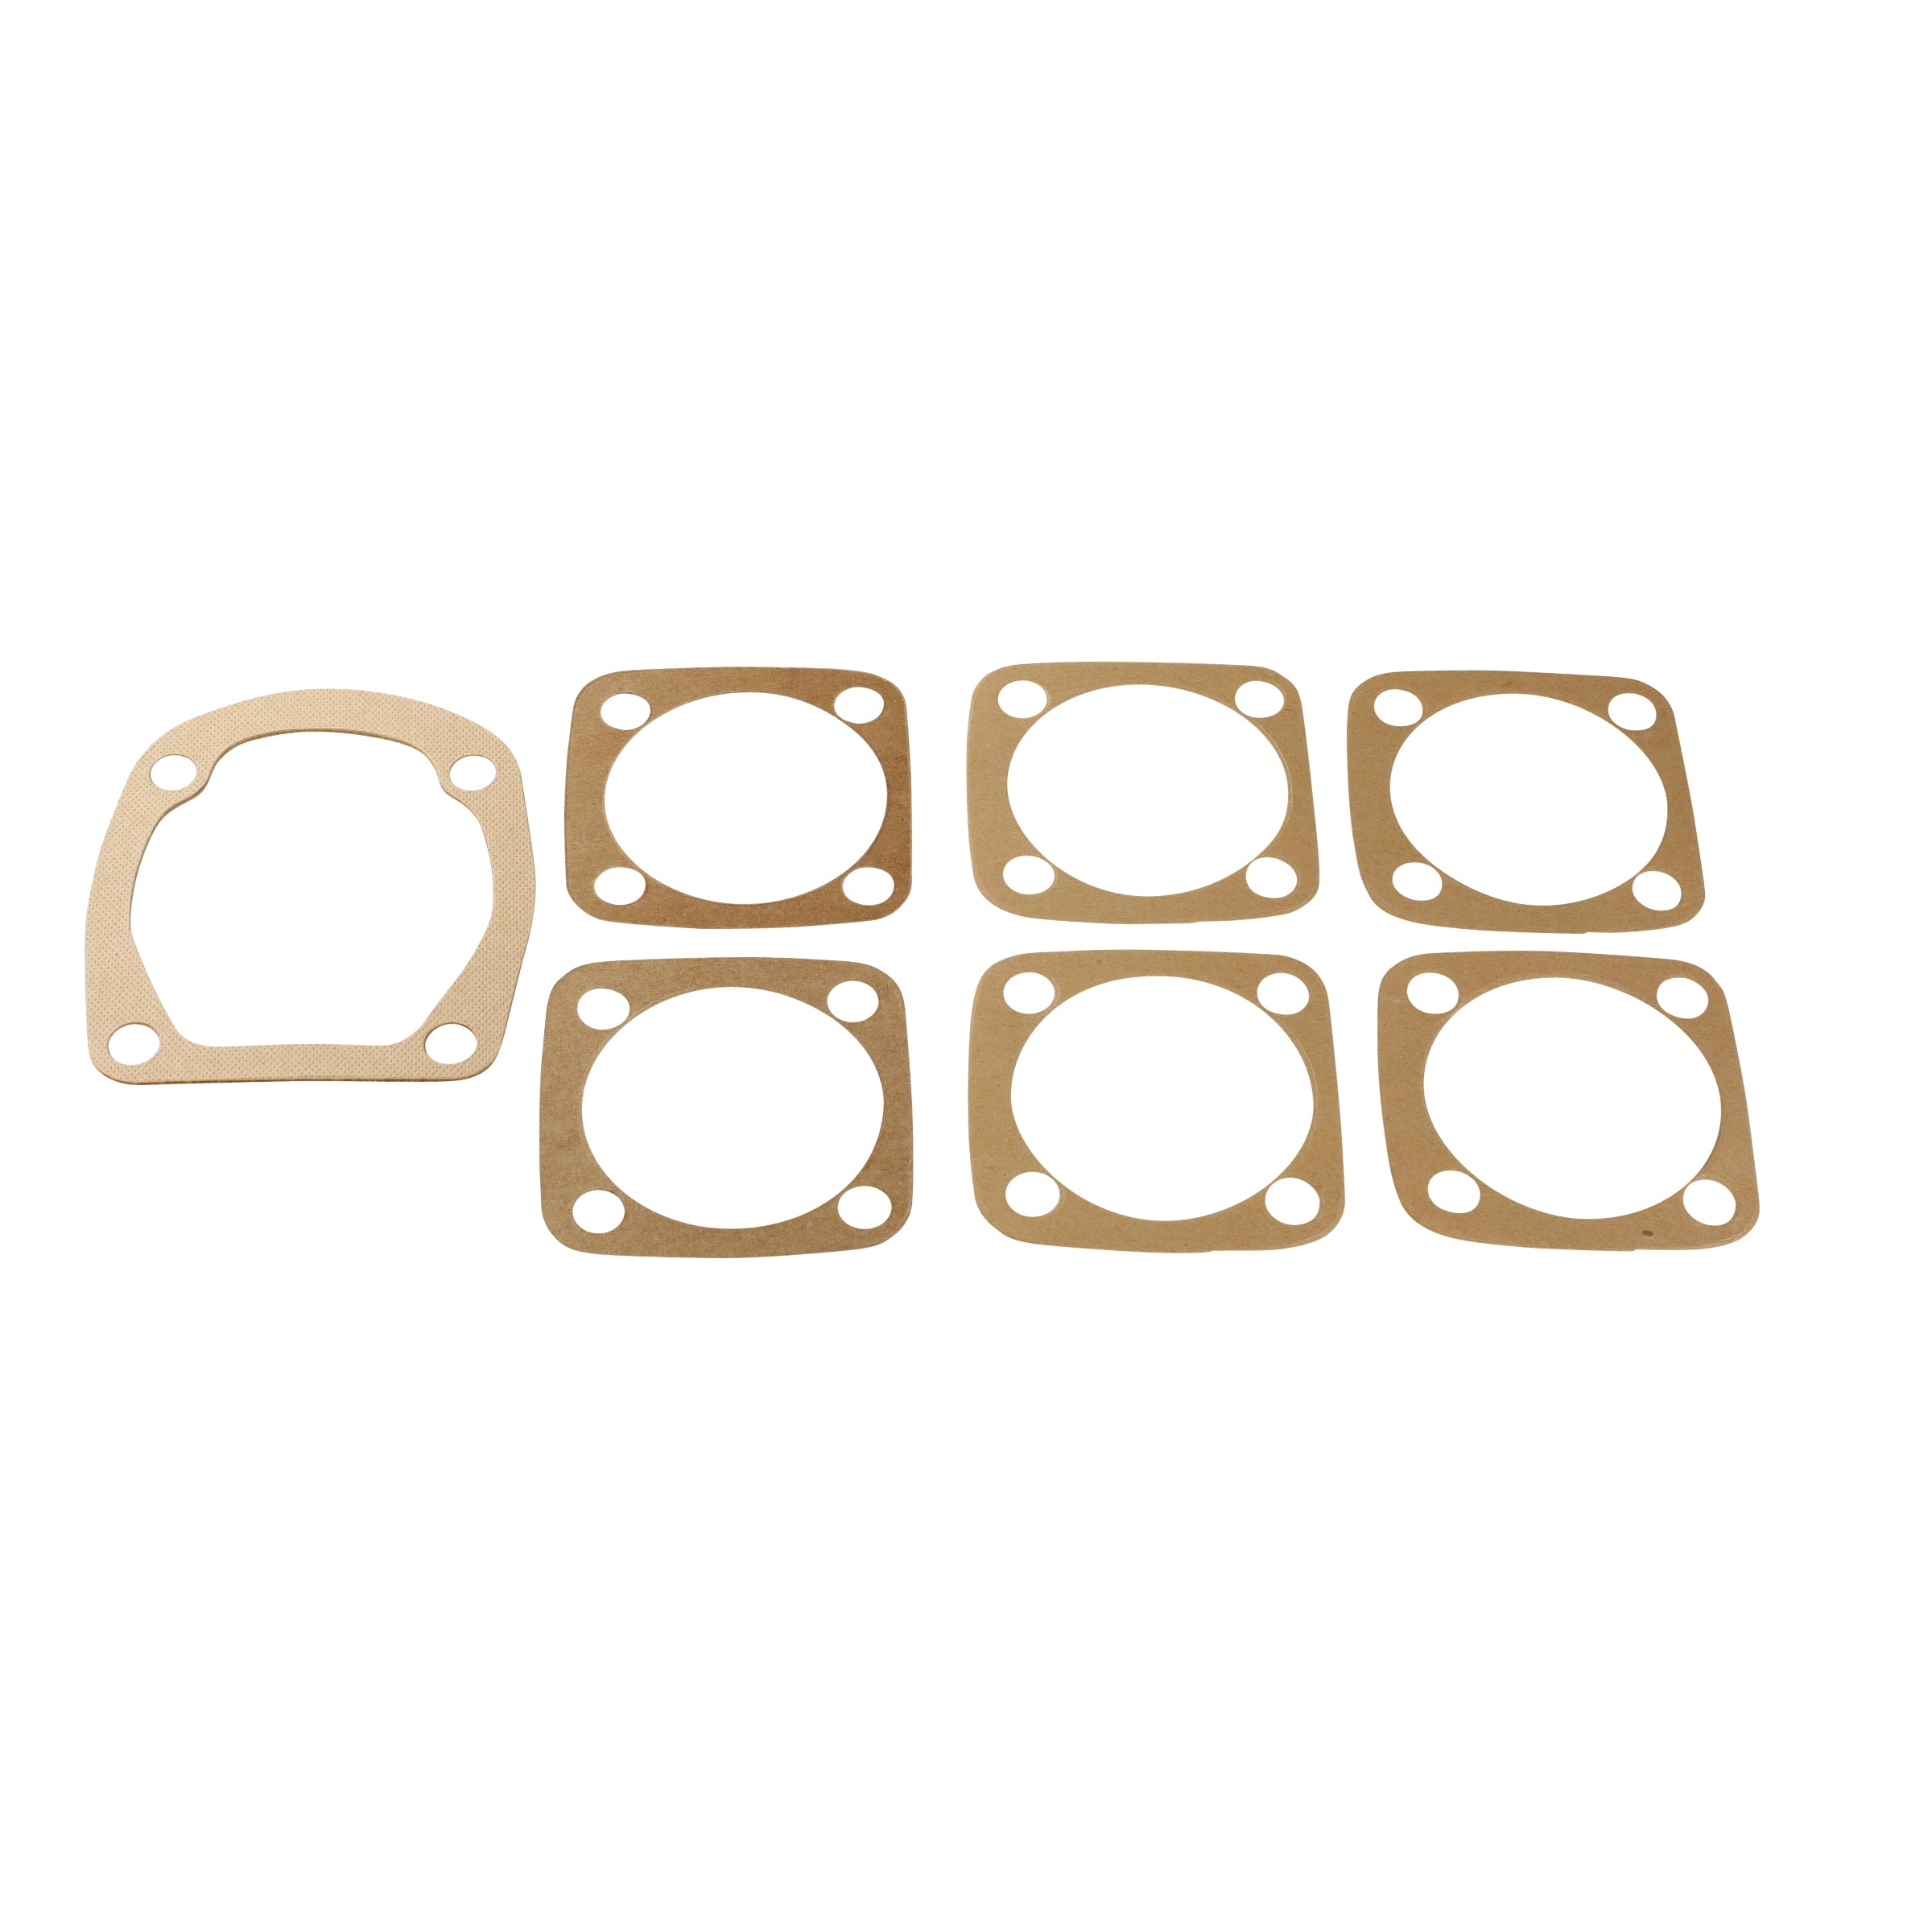 Steering Box Gasket Set • 1937-48 Ford